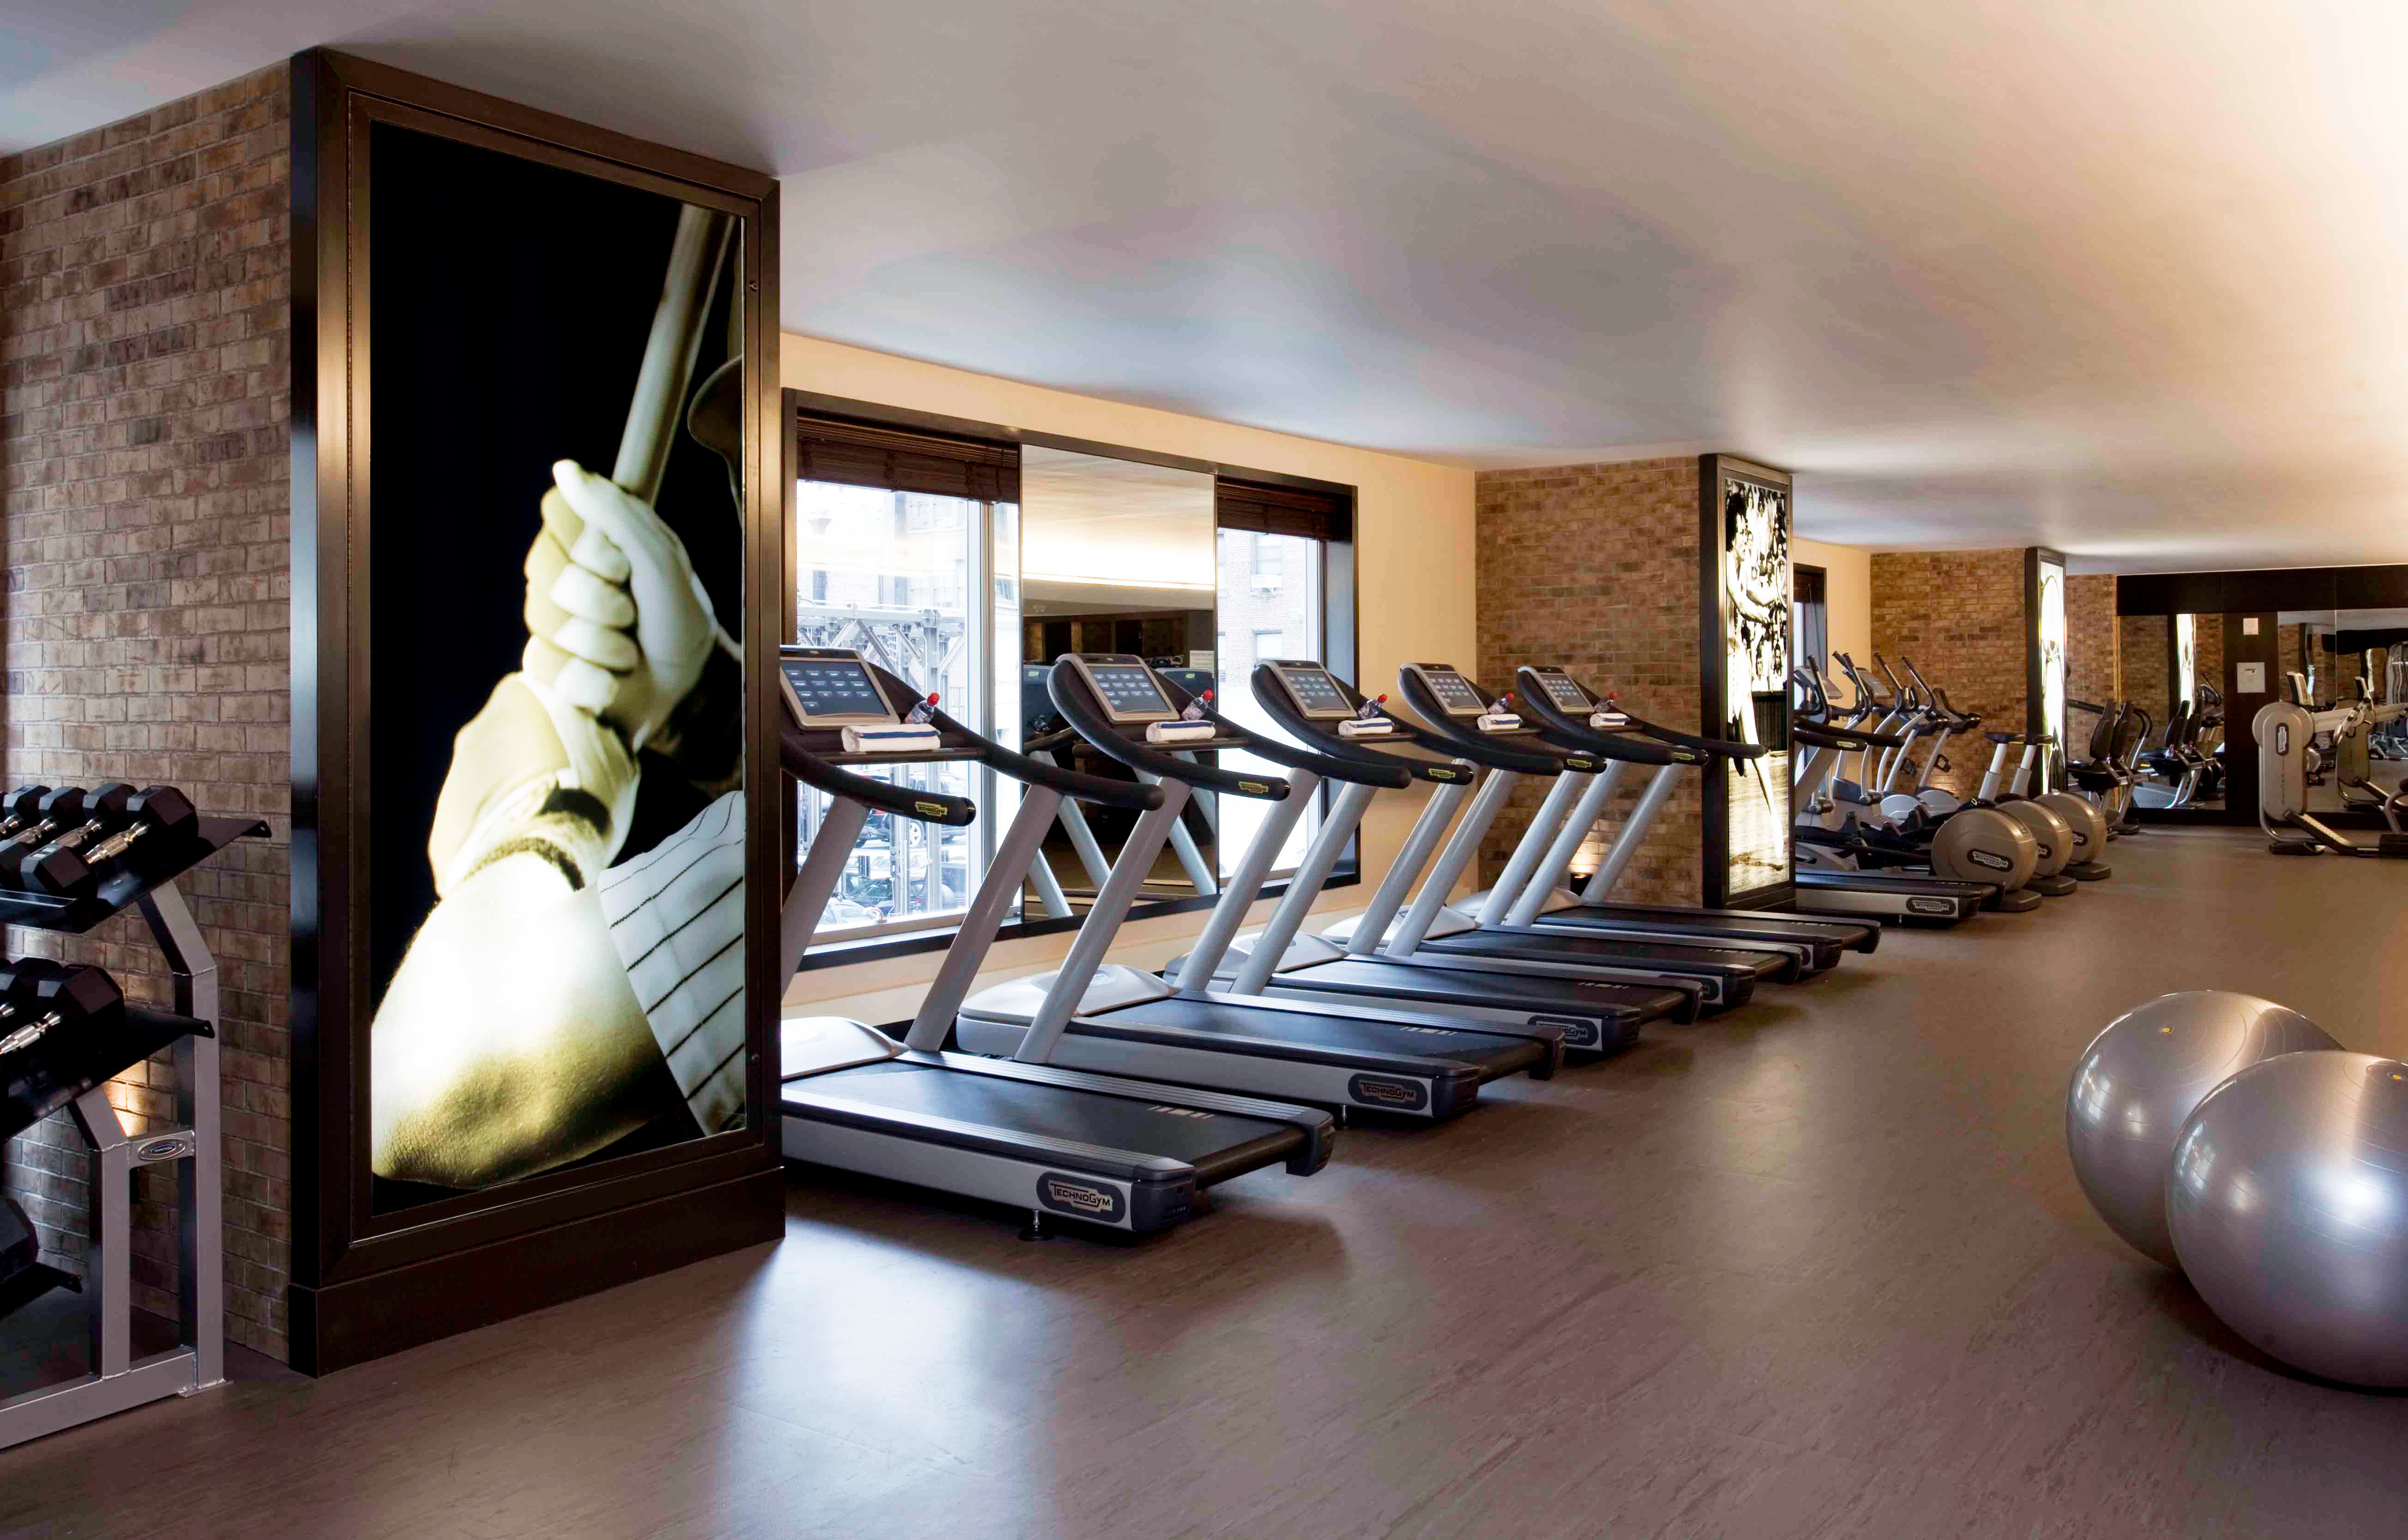 City Fitness Resort Sport Wellness structure sport venue gym living room